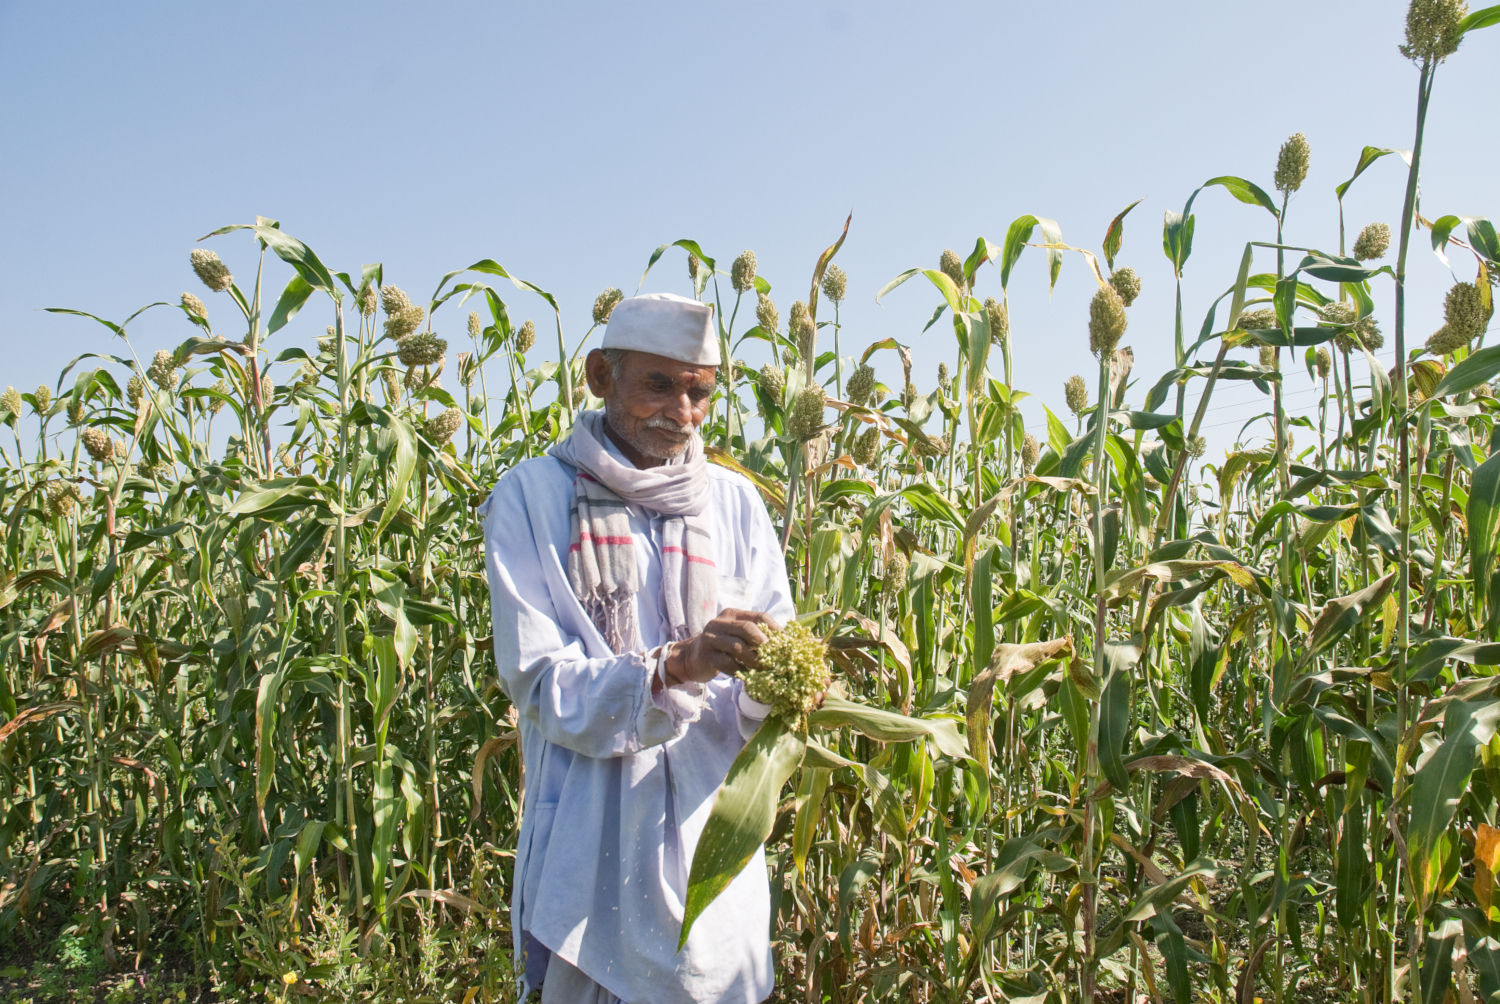 A sorghum farmer in Maharashtra, India (credits: ICRISAT/PS Rao / Flickr Creative Commons Attribution-NonCommercial 2.0 Generic (CC BY-NC 2.0))